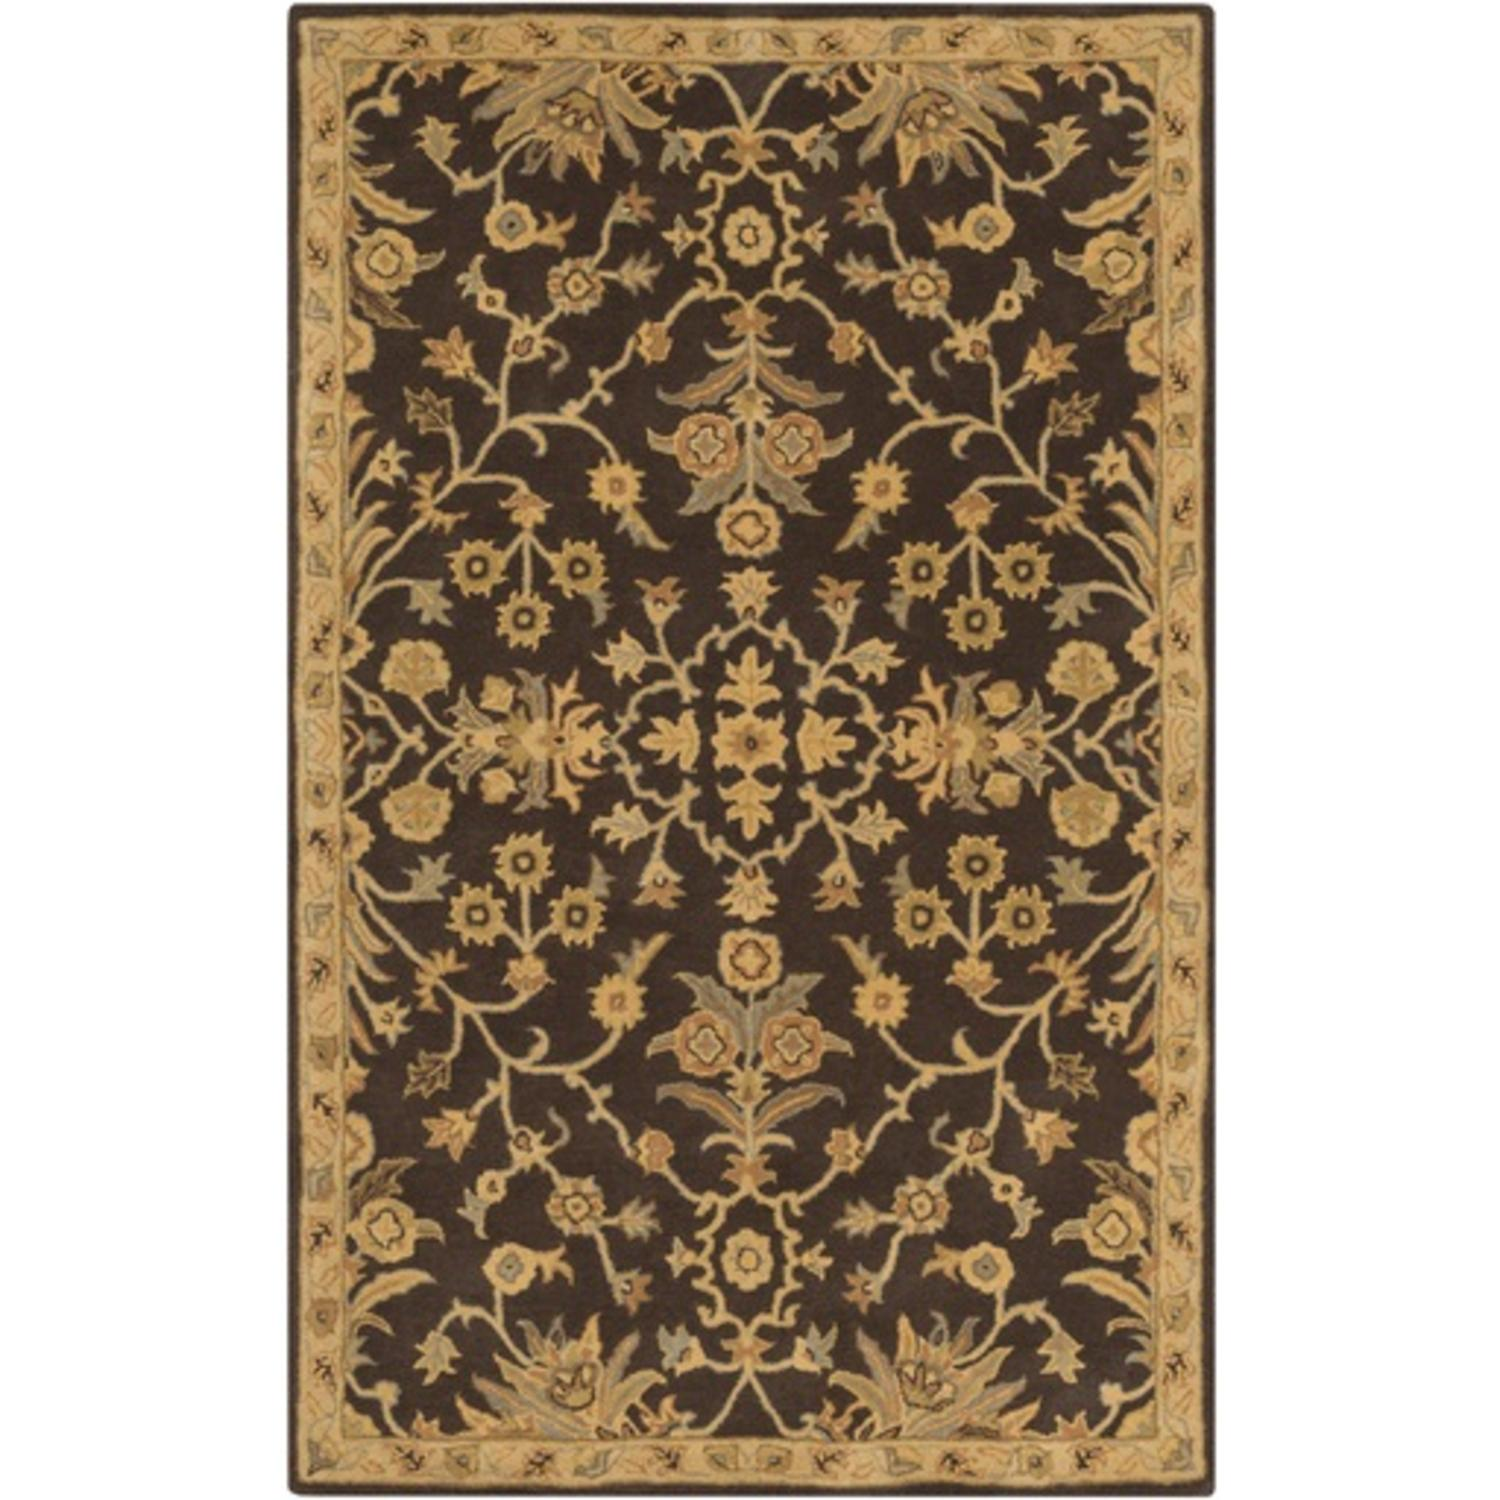 12' x 15' French Elegance Espresso, Gray and Gold Hand Tufted Wool Area Throw Rug